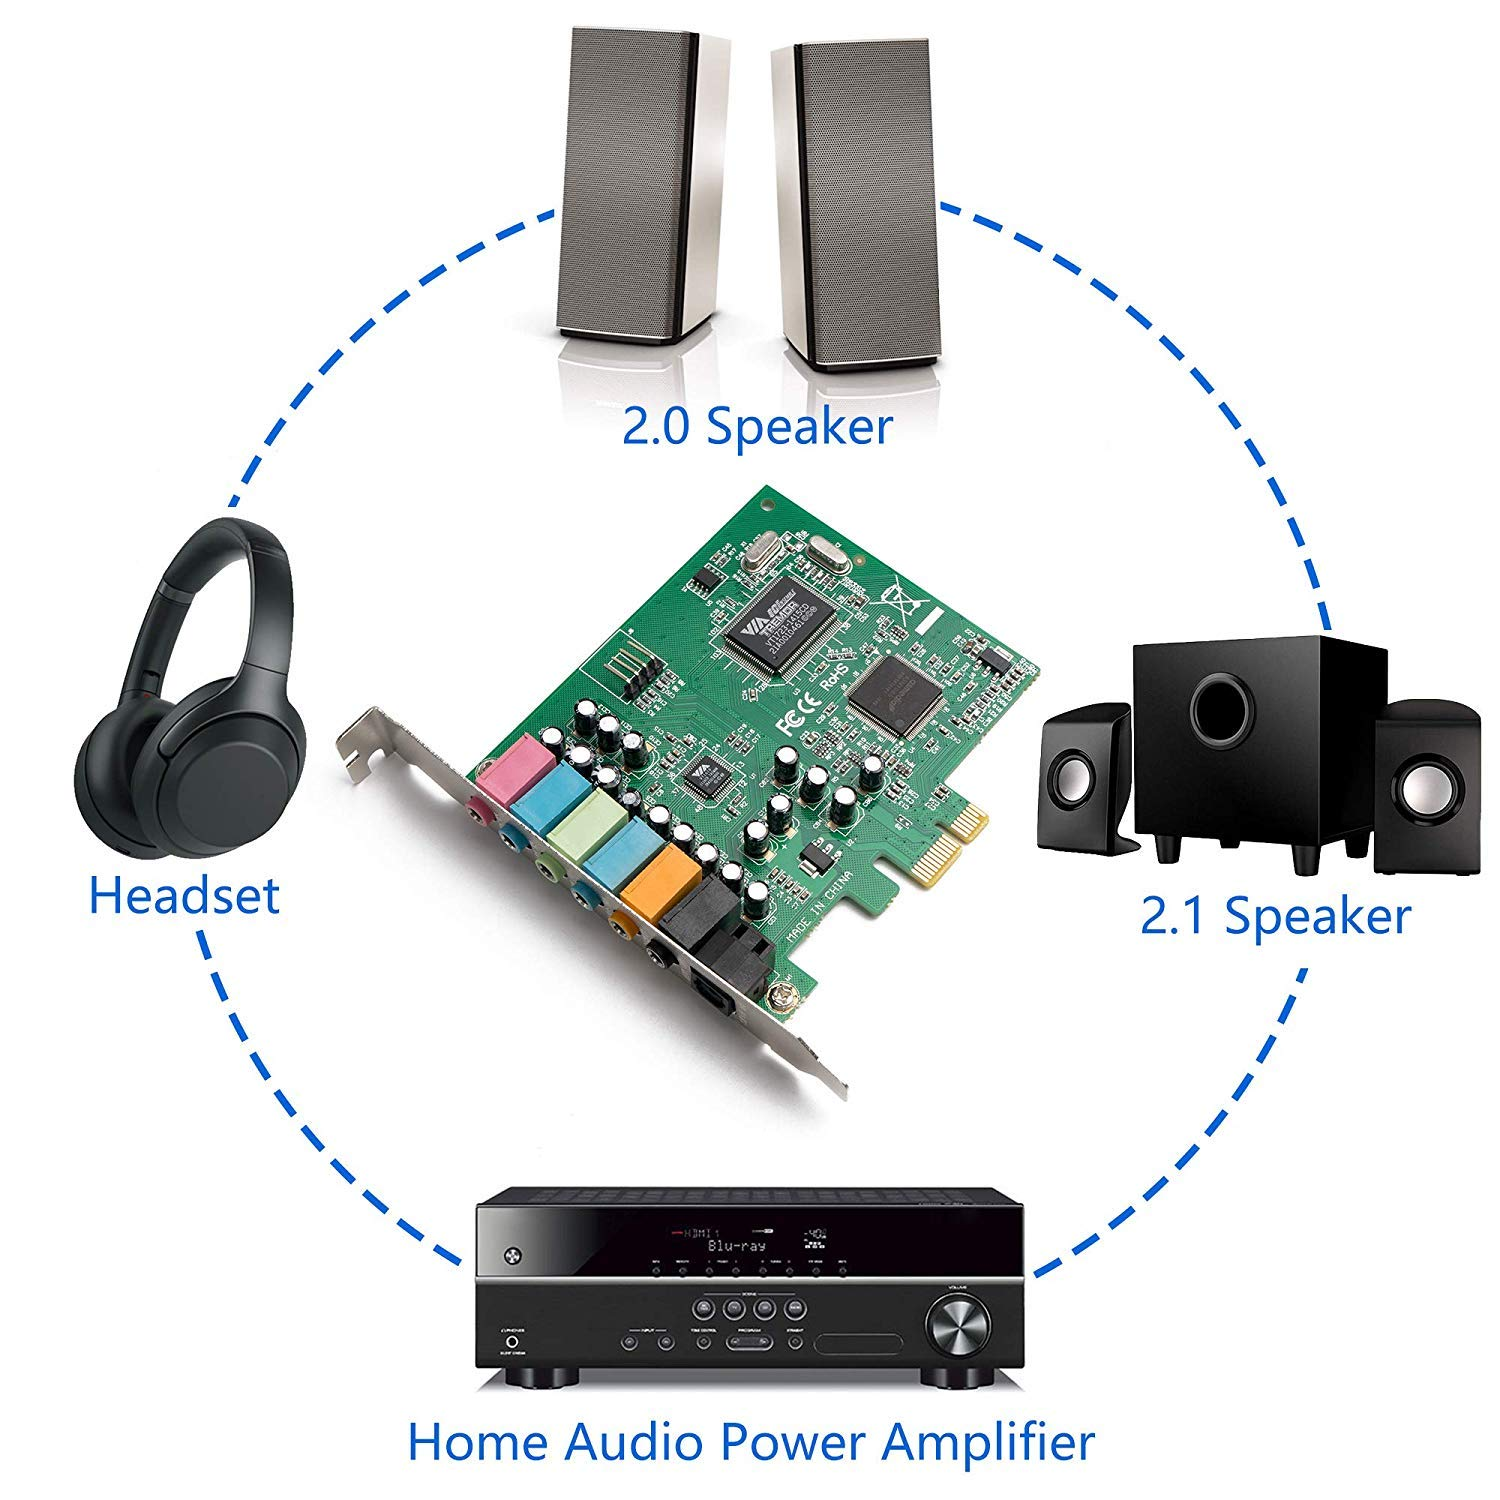 SHINESTAR Sound Card with S/PDIF Digital Optical Out, PCIe Sound Card for PC Windows 10, 7.1 Channel PCI-e Audio Card, 3D Surround Stereo, Support Windows XP / 7/8 by SHINESTAR (Image #5)